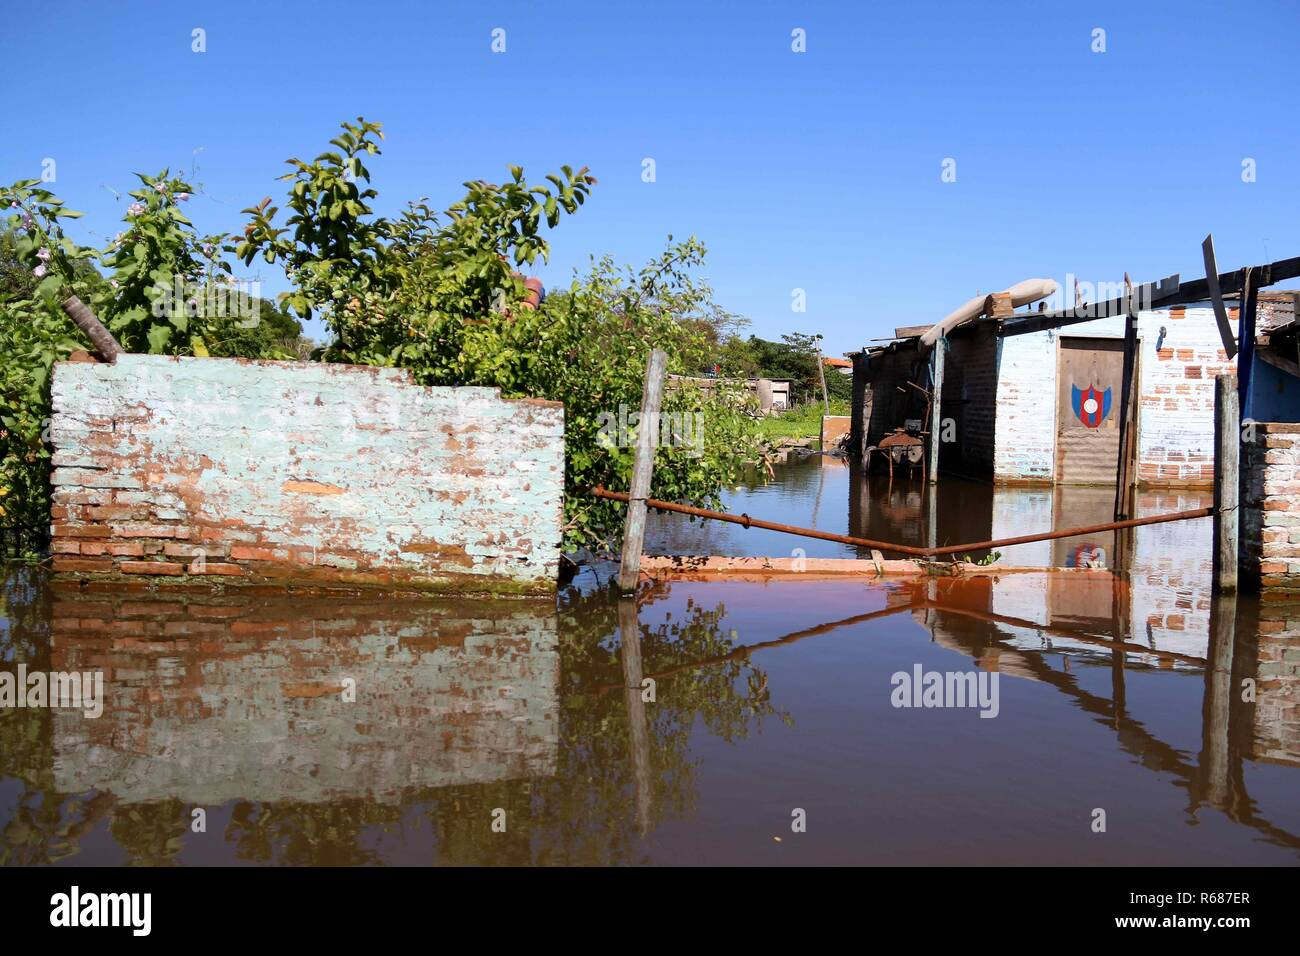 Asuncion, Paraguay. 04th Dec, 2018. A view of a house on a flooded street, in Asuncion, Paraguay, 04 December 2018. Numerous inhabitants of the neighborhood known as 'Banado Sur' are forced to live in unhygienic conditions due to the stagnant water of the floods caused by the rise of the Paraguay river, which have forced 7,500 families to evacuate their homes. Credit: Andres Cristaldo/EFE/Alamy Live News - Stock Image